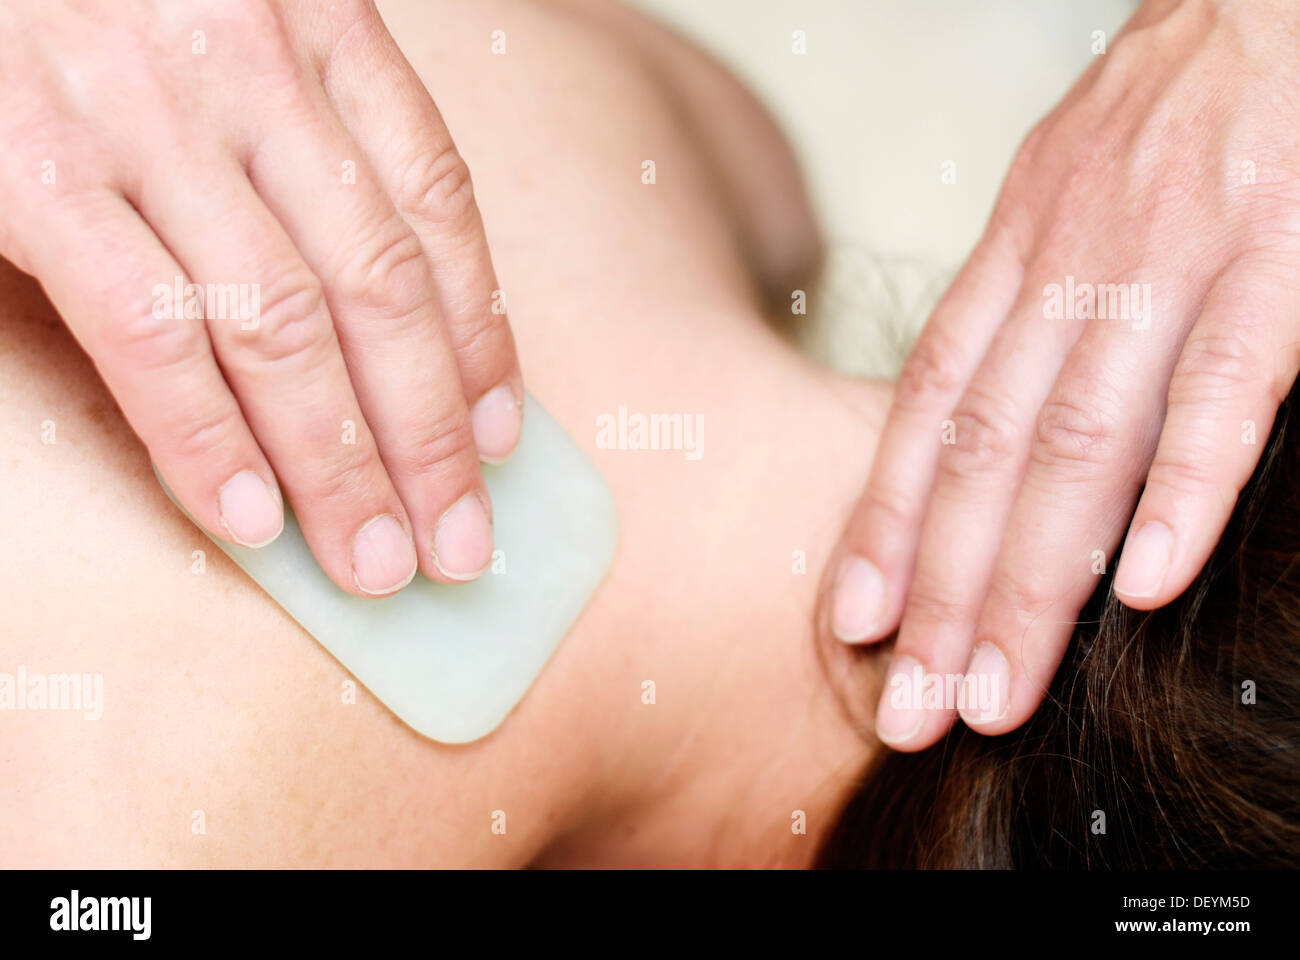 Young woman receiving Gua Sha therapy in a natural healing practice - Stock Image